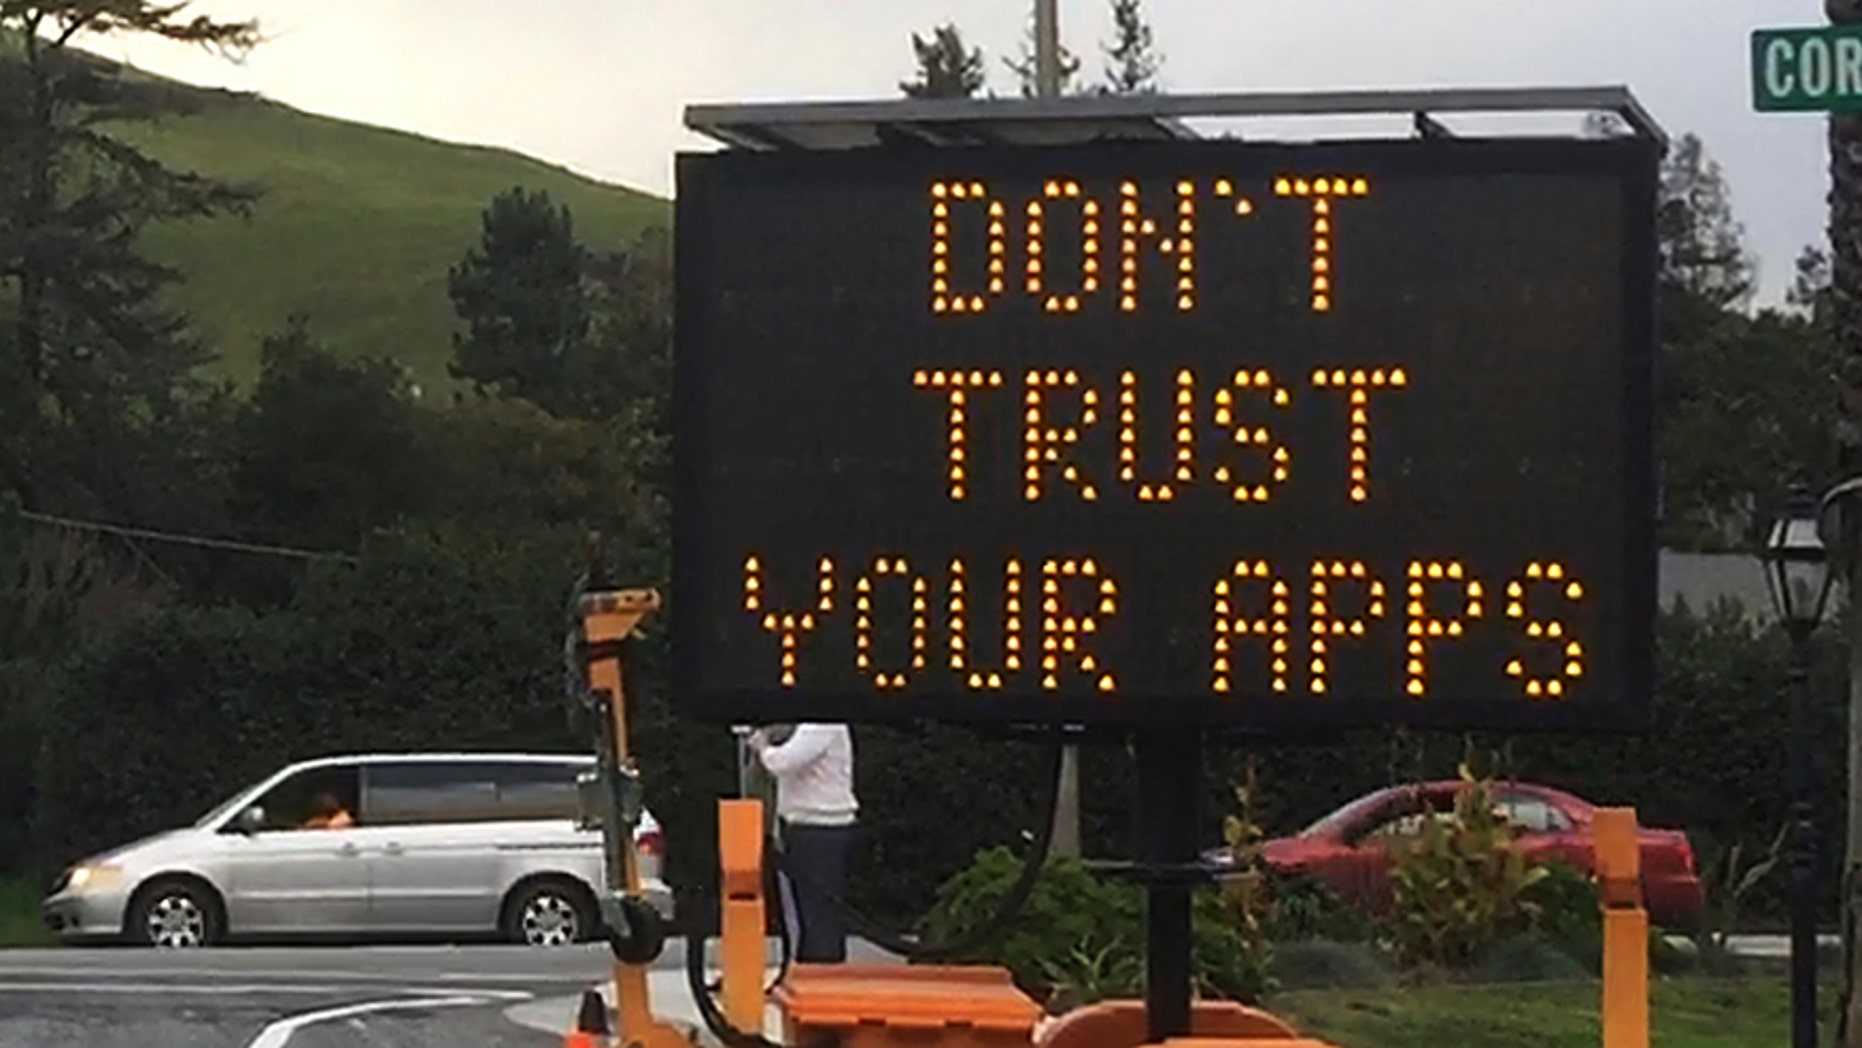 """This undated photo provided by the City of Fremont, Calif., shows a blinking sign warning drivers: """"Don't Trust Your Apps,"""" in Fremont, Calif. The sign was part of the city's response to combatting the congestion caused by traffic being diverted onto neighborhood and side streets by digital maps that direct motorists away from highway traffic jams. (City of Fremont, Calif. via AP)"""